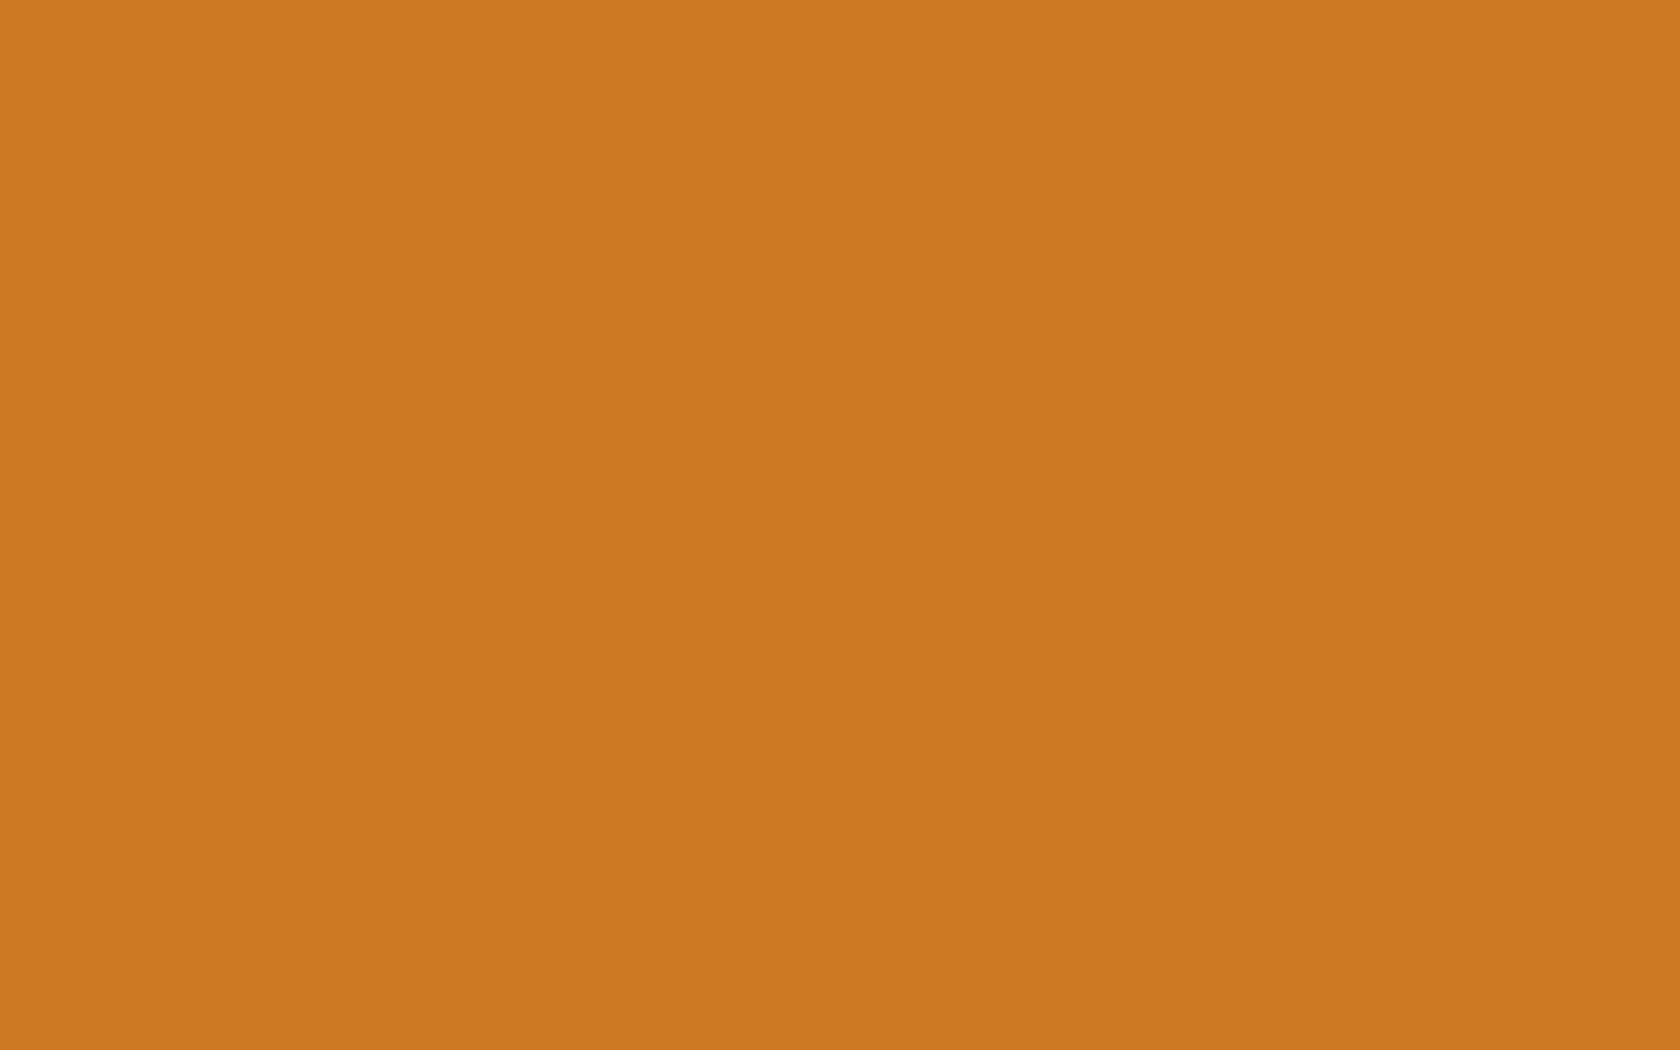 1680x1050 Ochre Solid Color Background